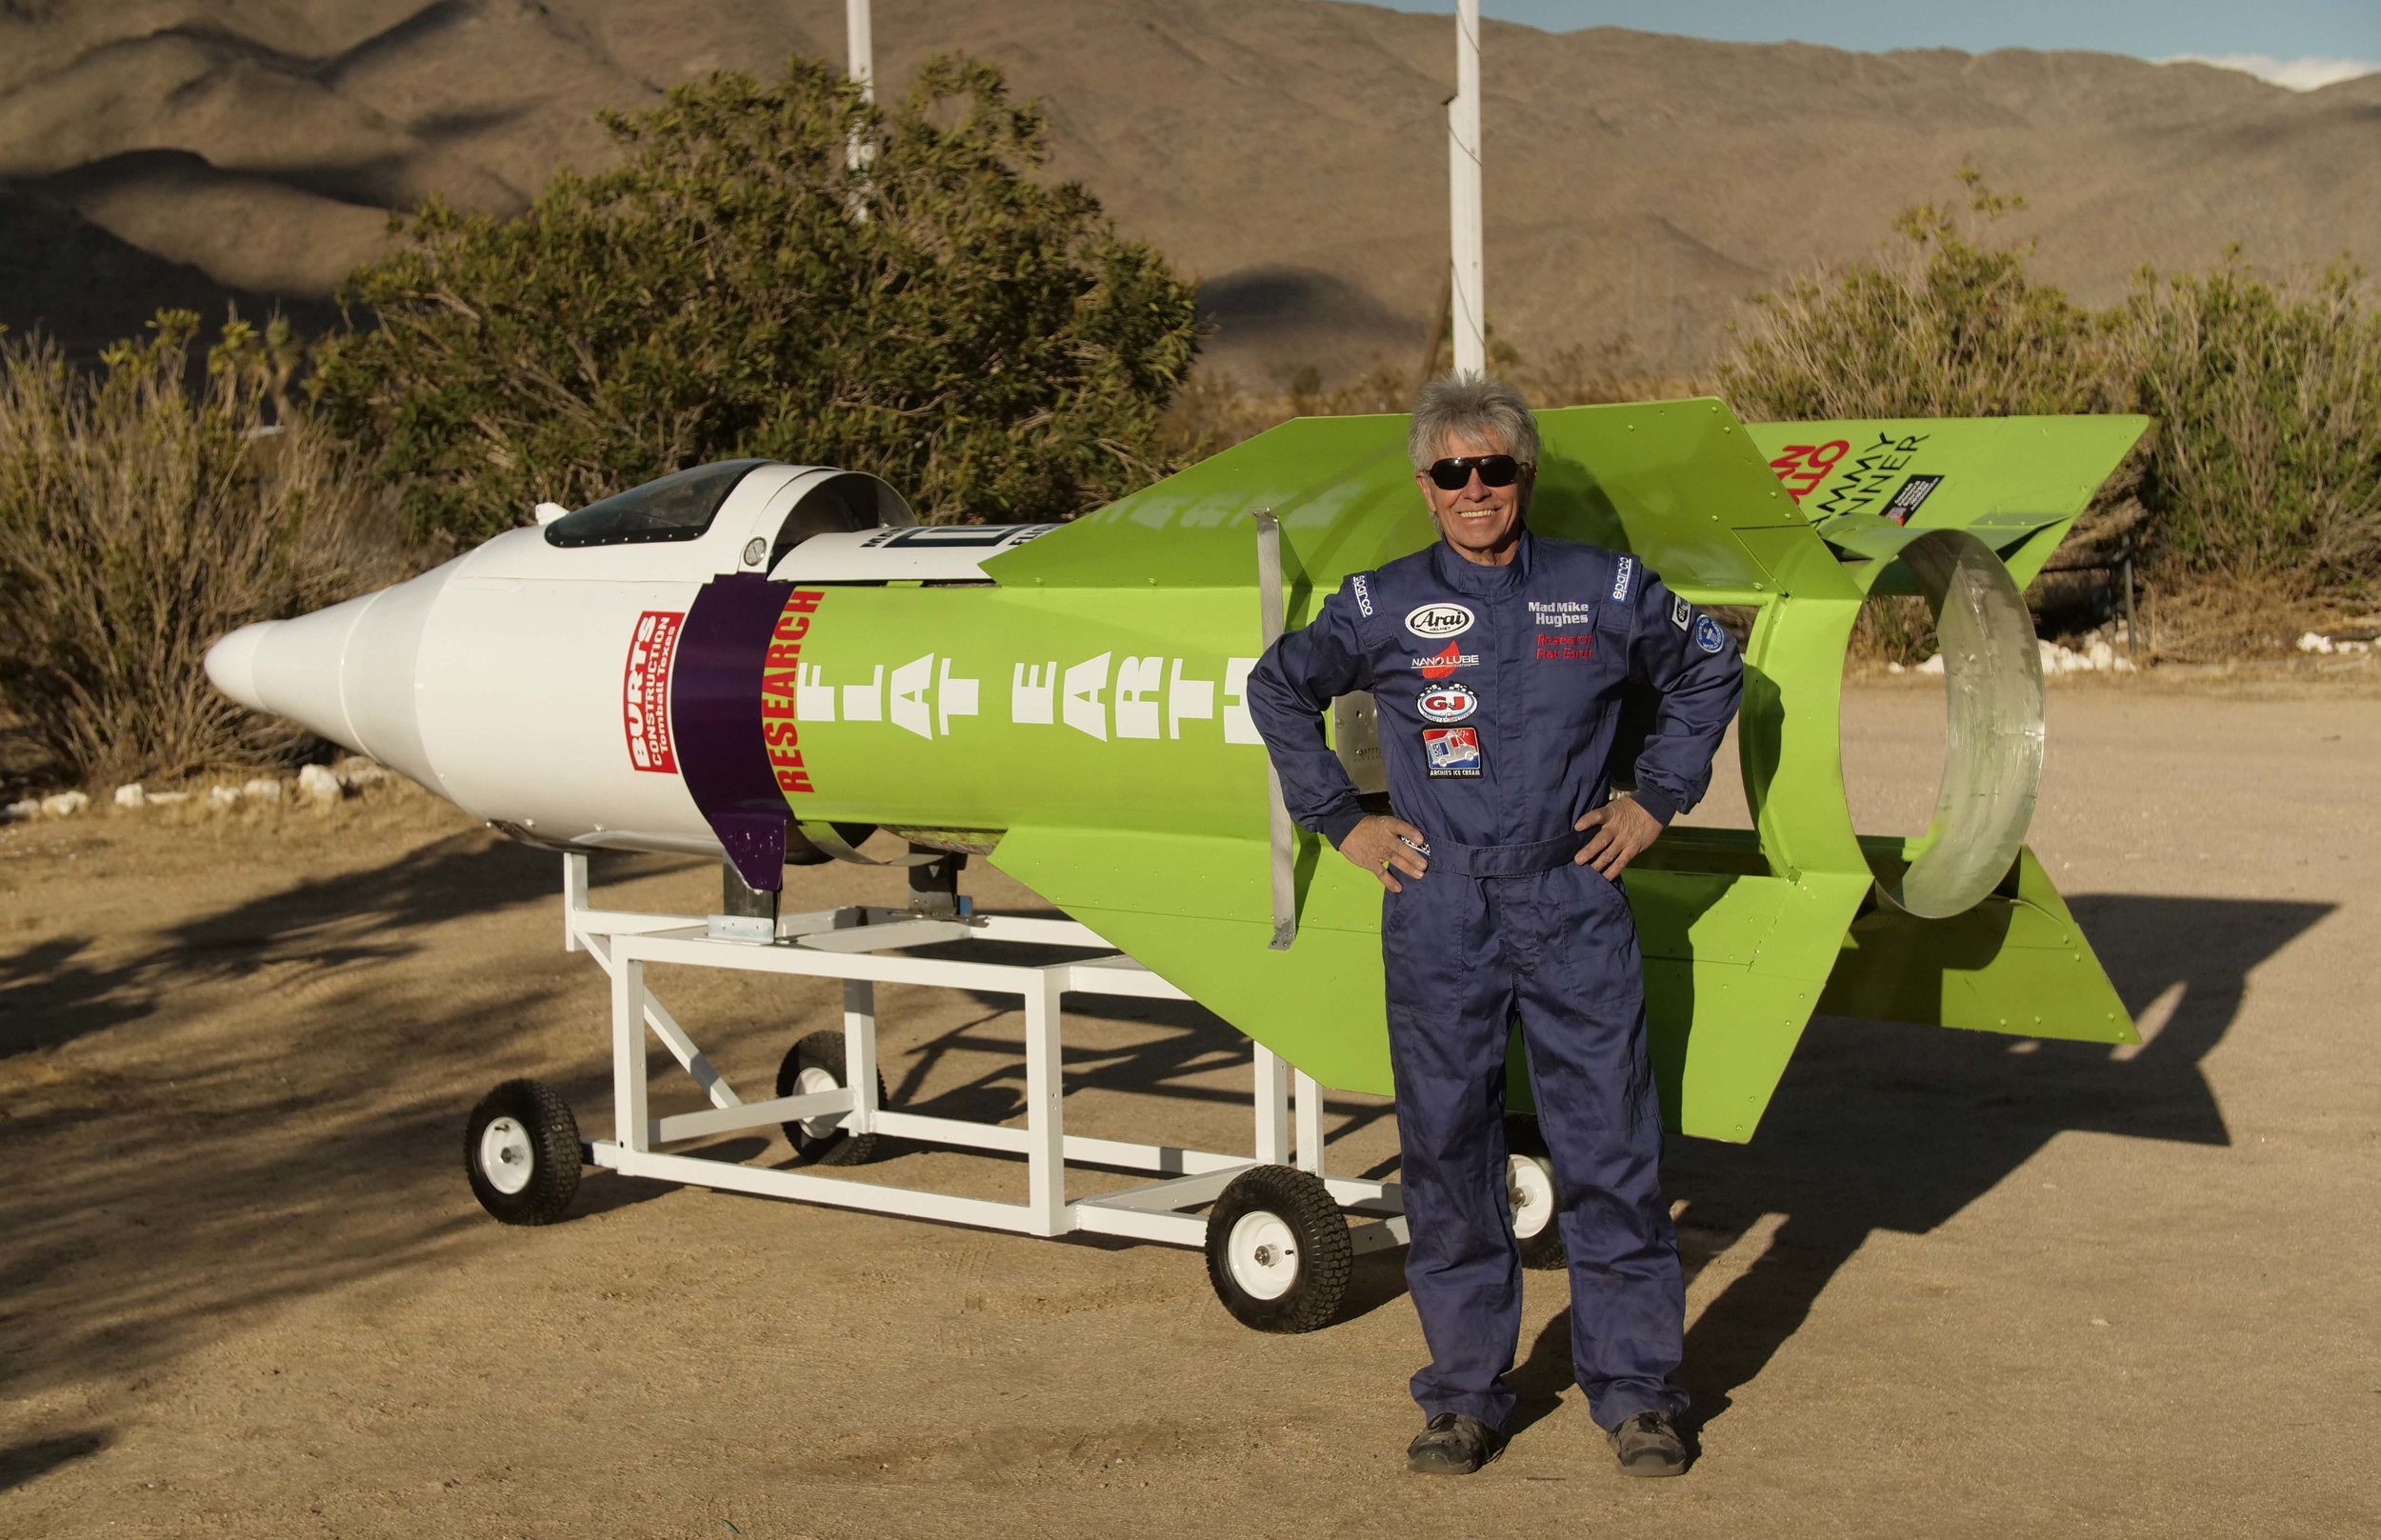 'Mad Mike' and the flat-Earth rocket during a publicity shoot.